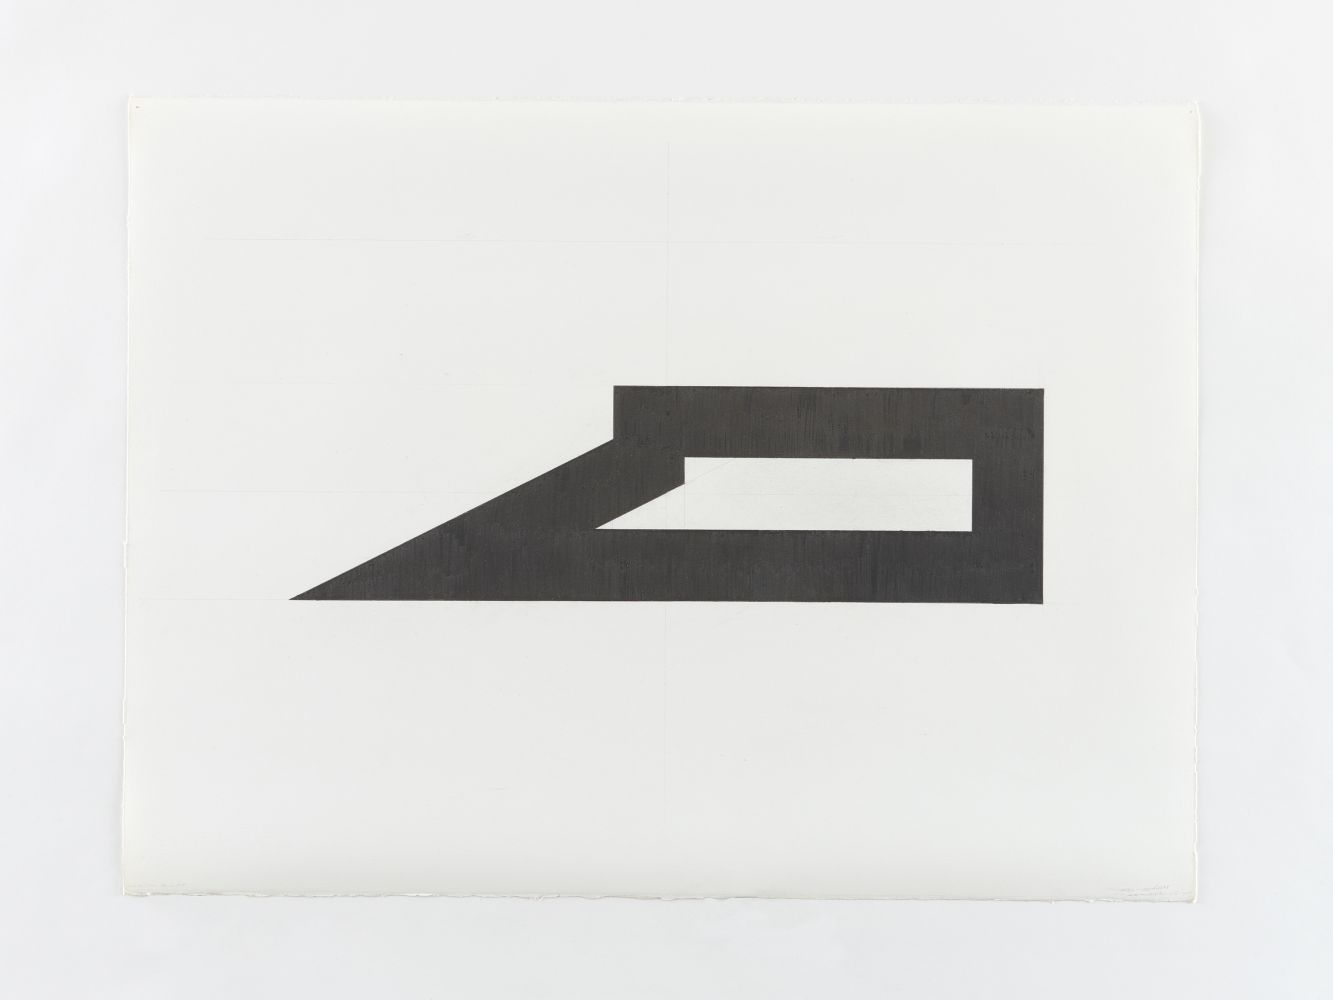 Ted Stamm LW-2H (Lo Wooster), 1979 graphite on paper 22 1/4 x 29 7/8 inches